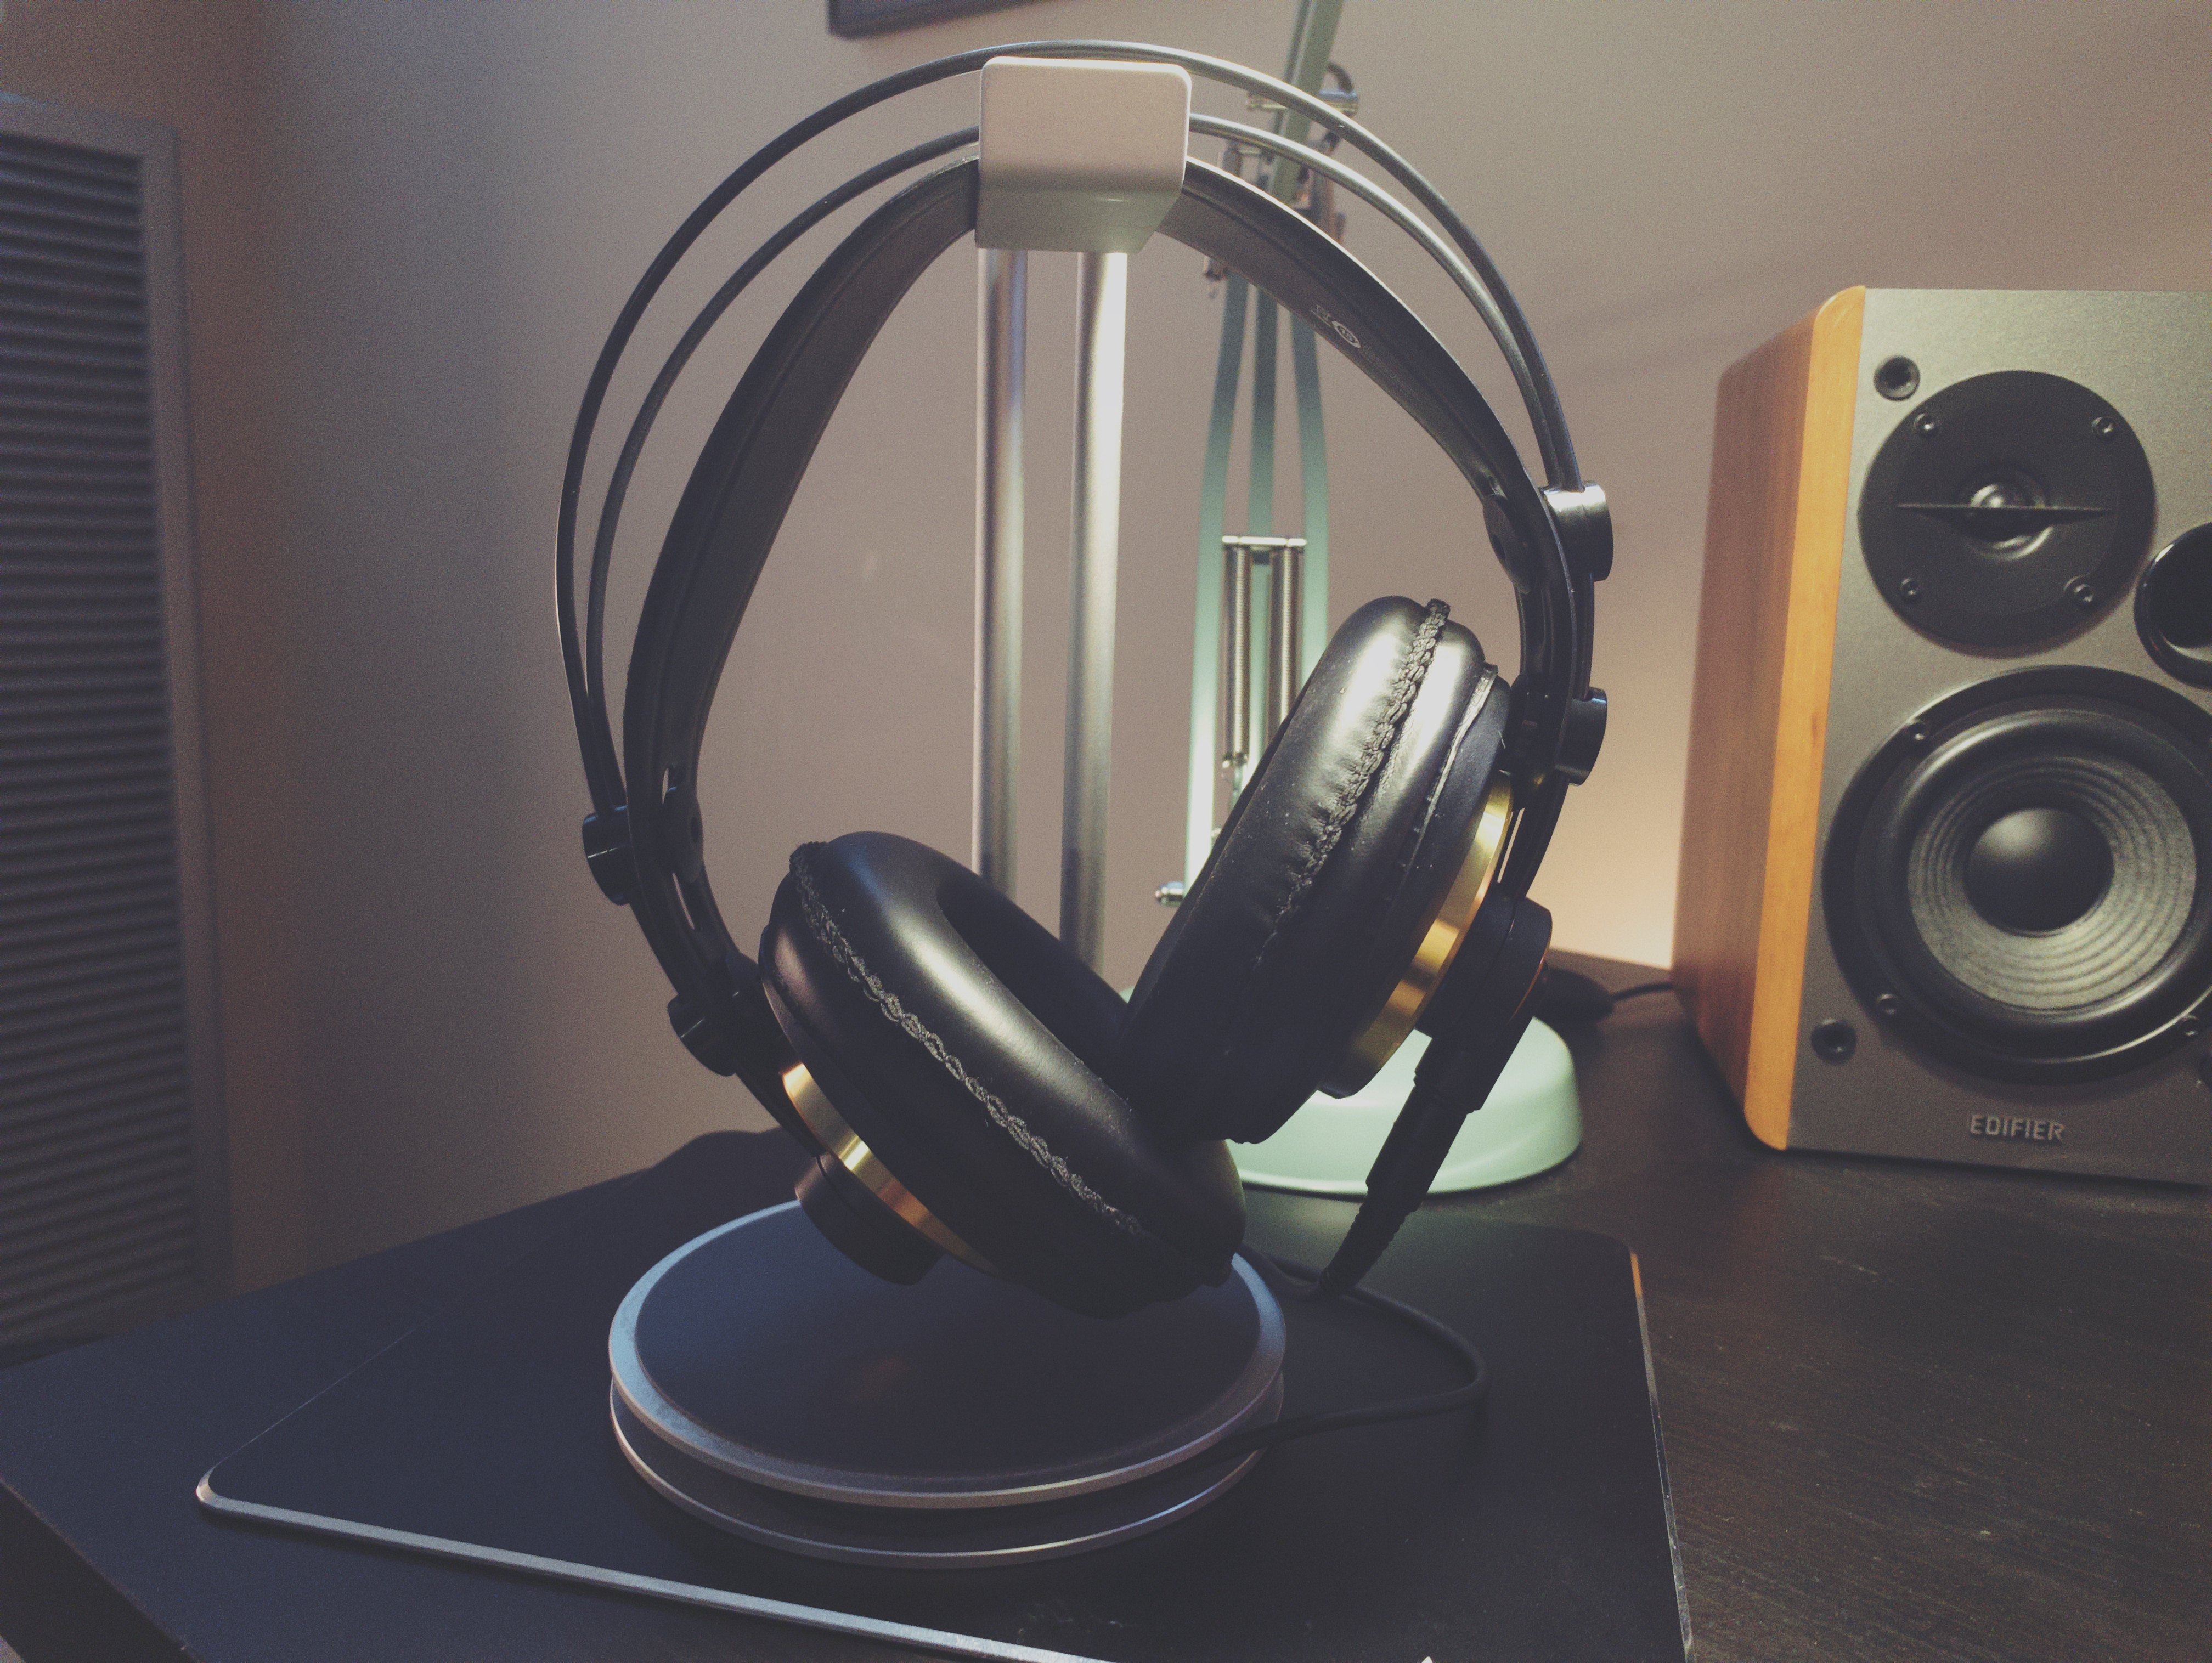 AKG k240 and Knox DAC, A Review